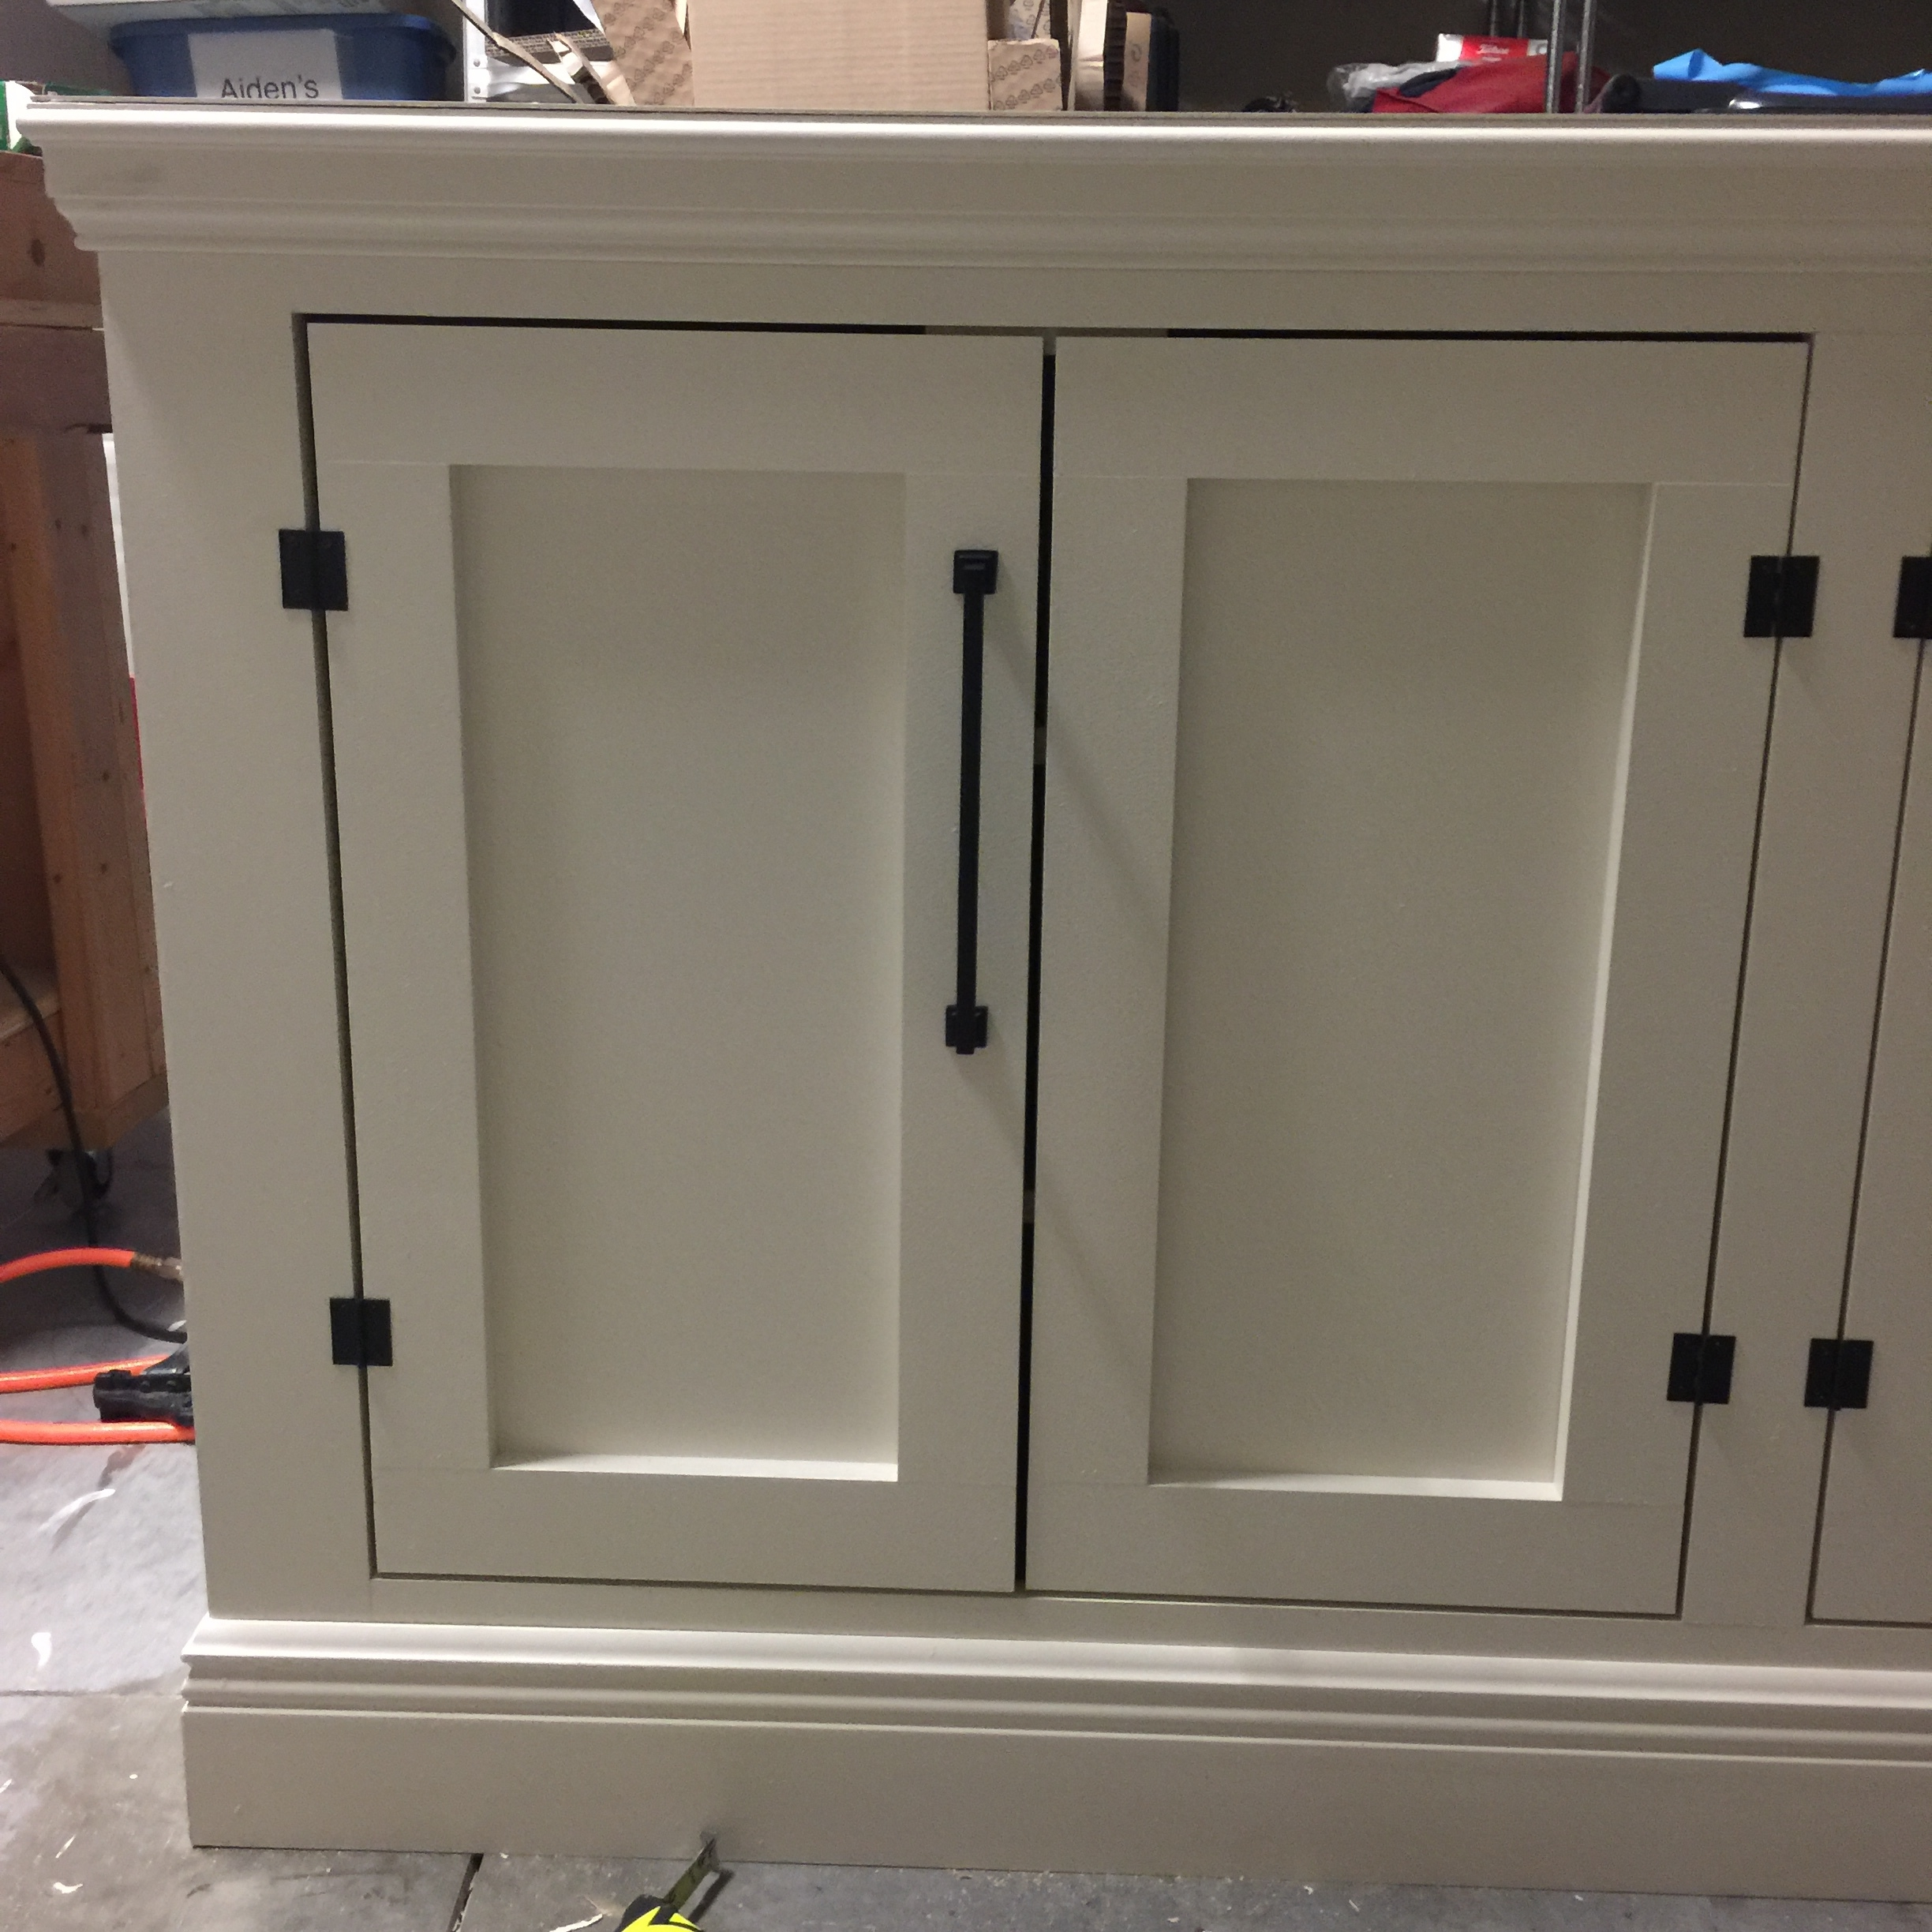 plywood kitchen cabinets diy restoration hardware sideboard tv stand frills amp drills 1561